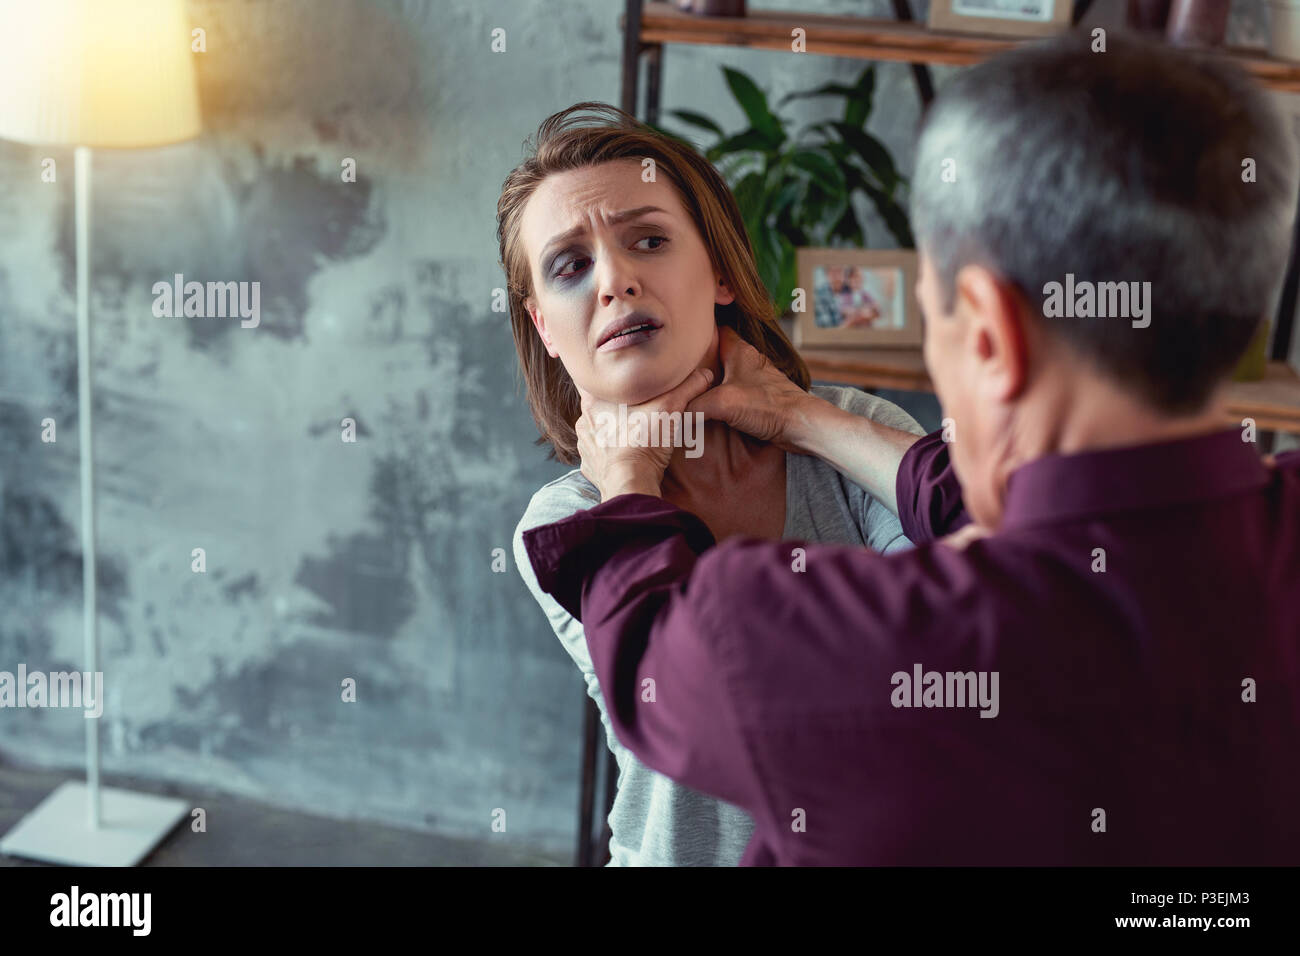 Victim of aggression feeling very scared - Stock Image